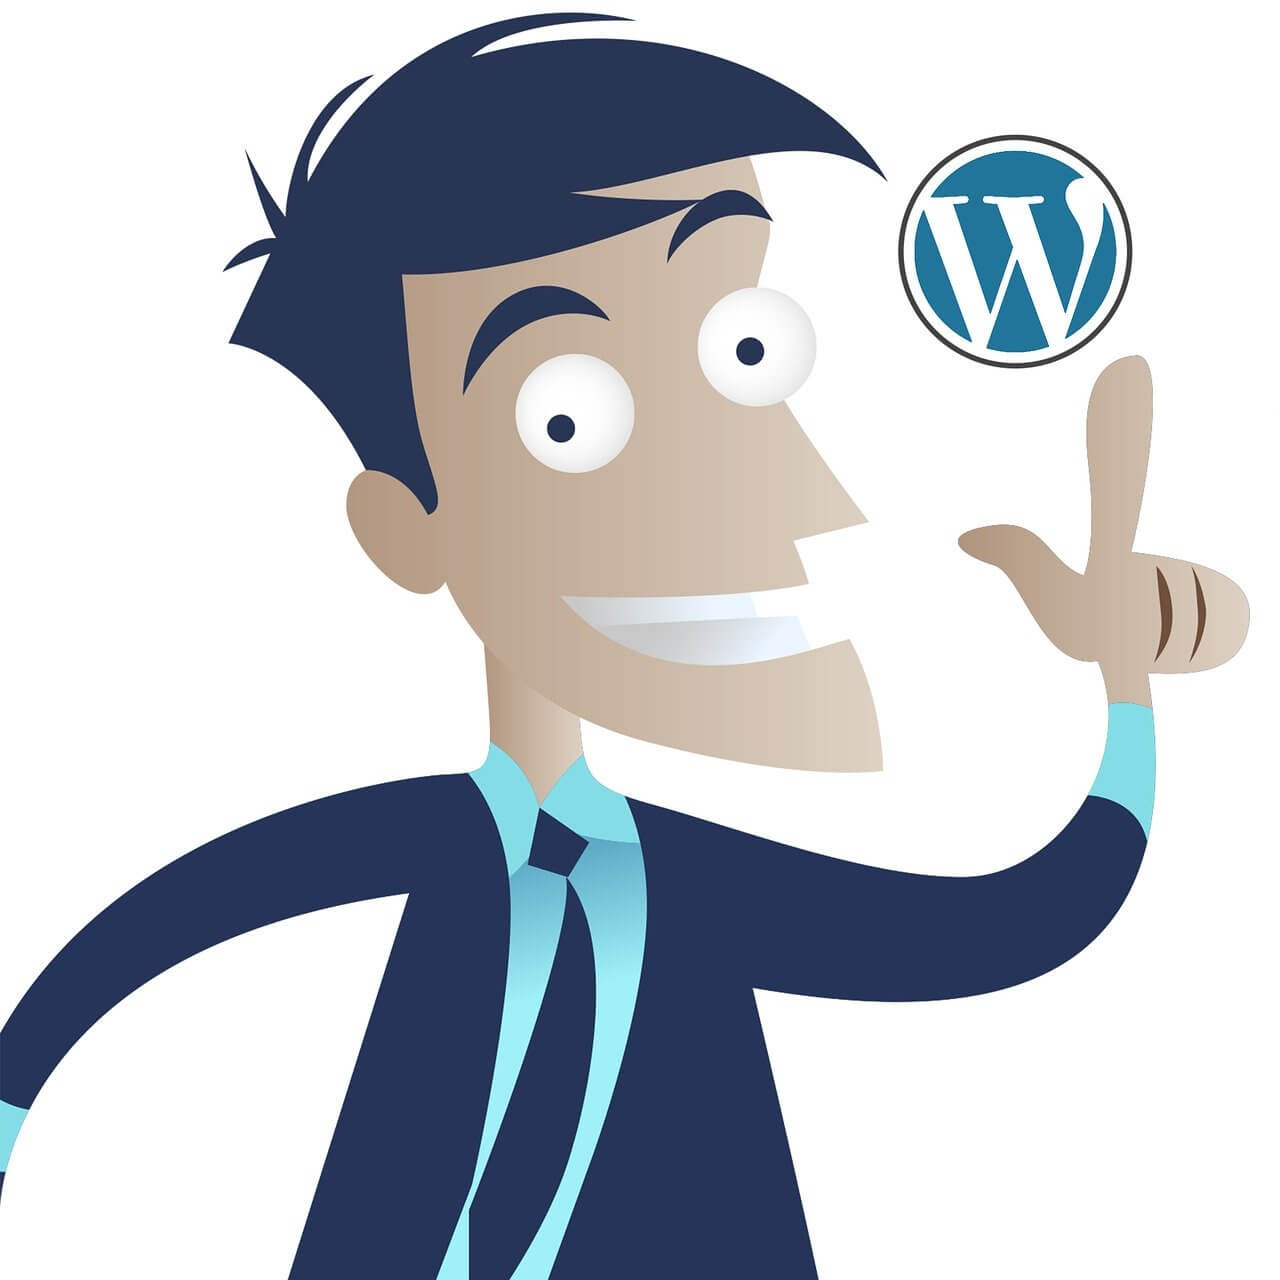 Wordpress Idea Business Man  - 195946 / Pixabay